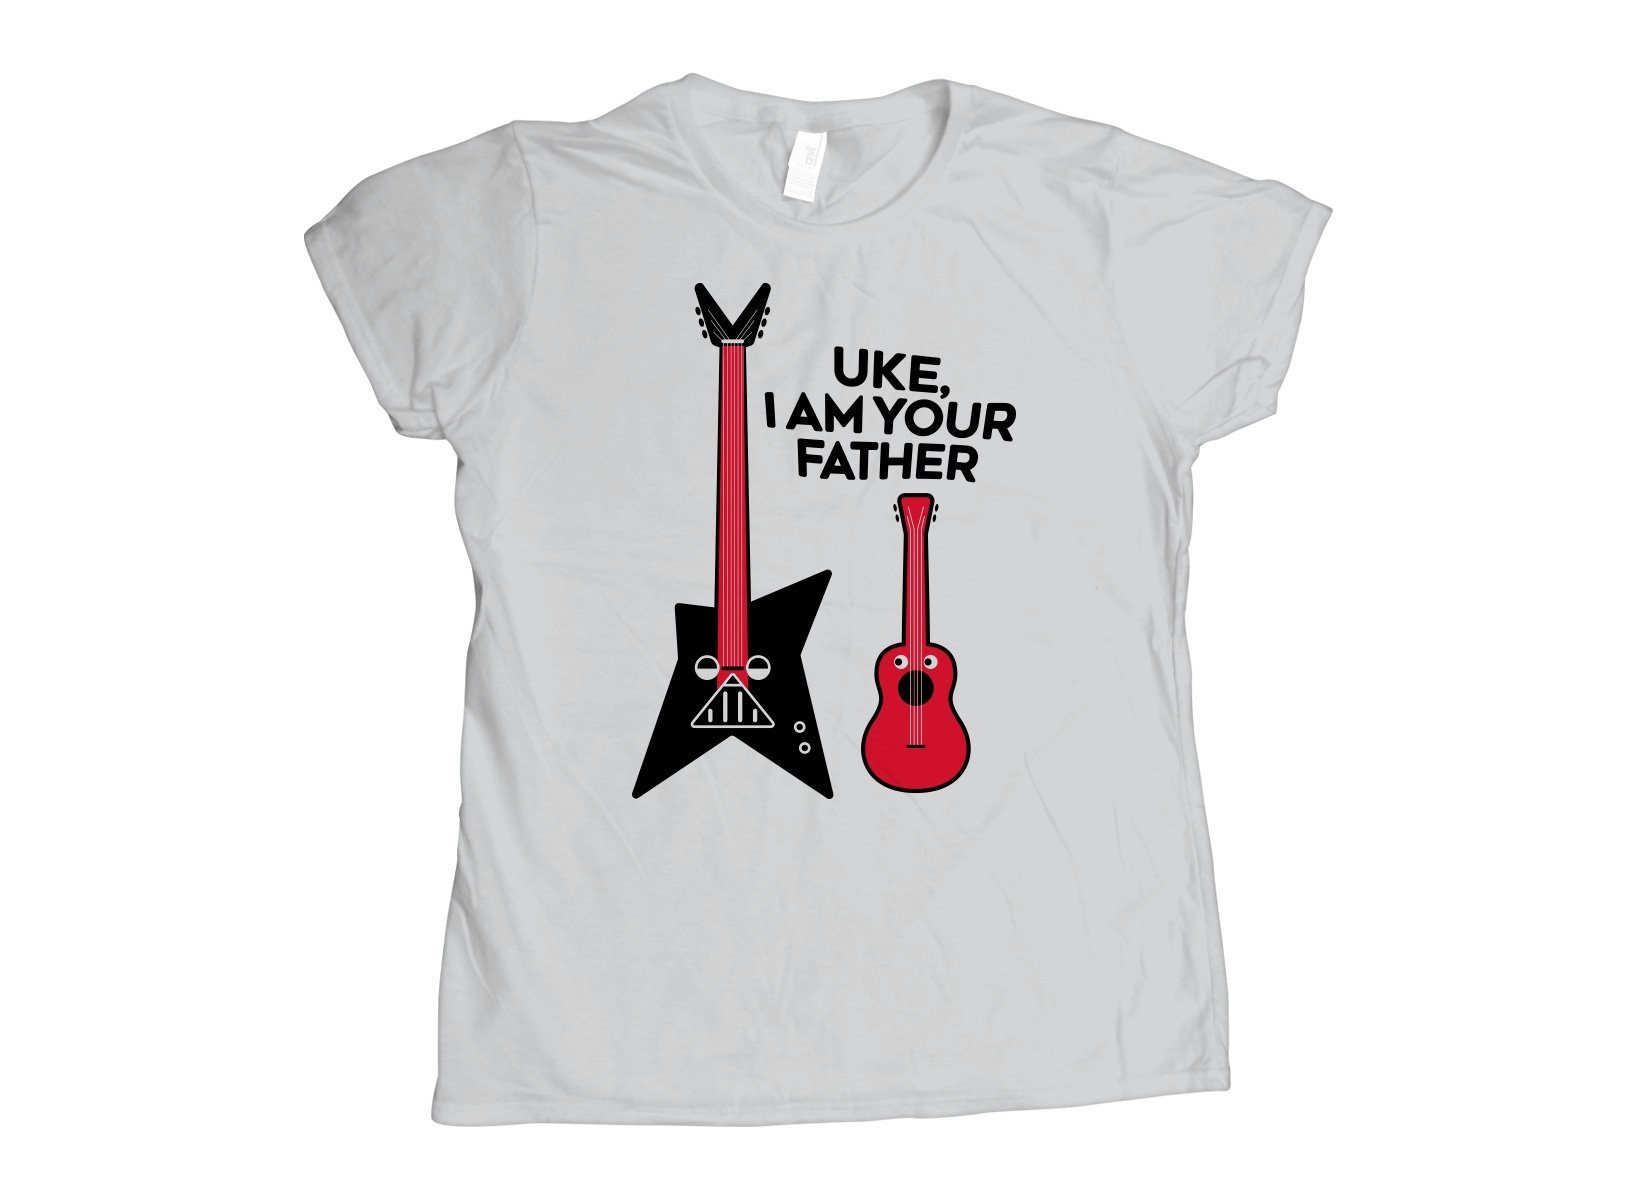 Uke, I Am Your Father on Womens T-Shirt